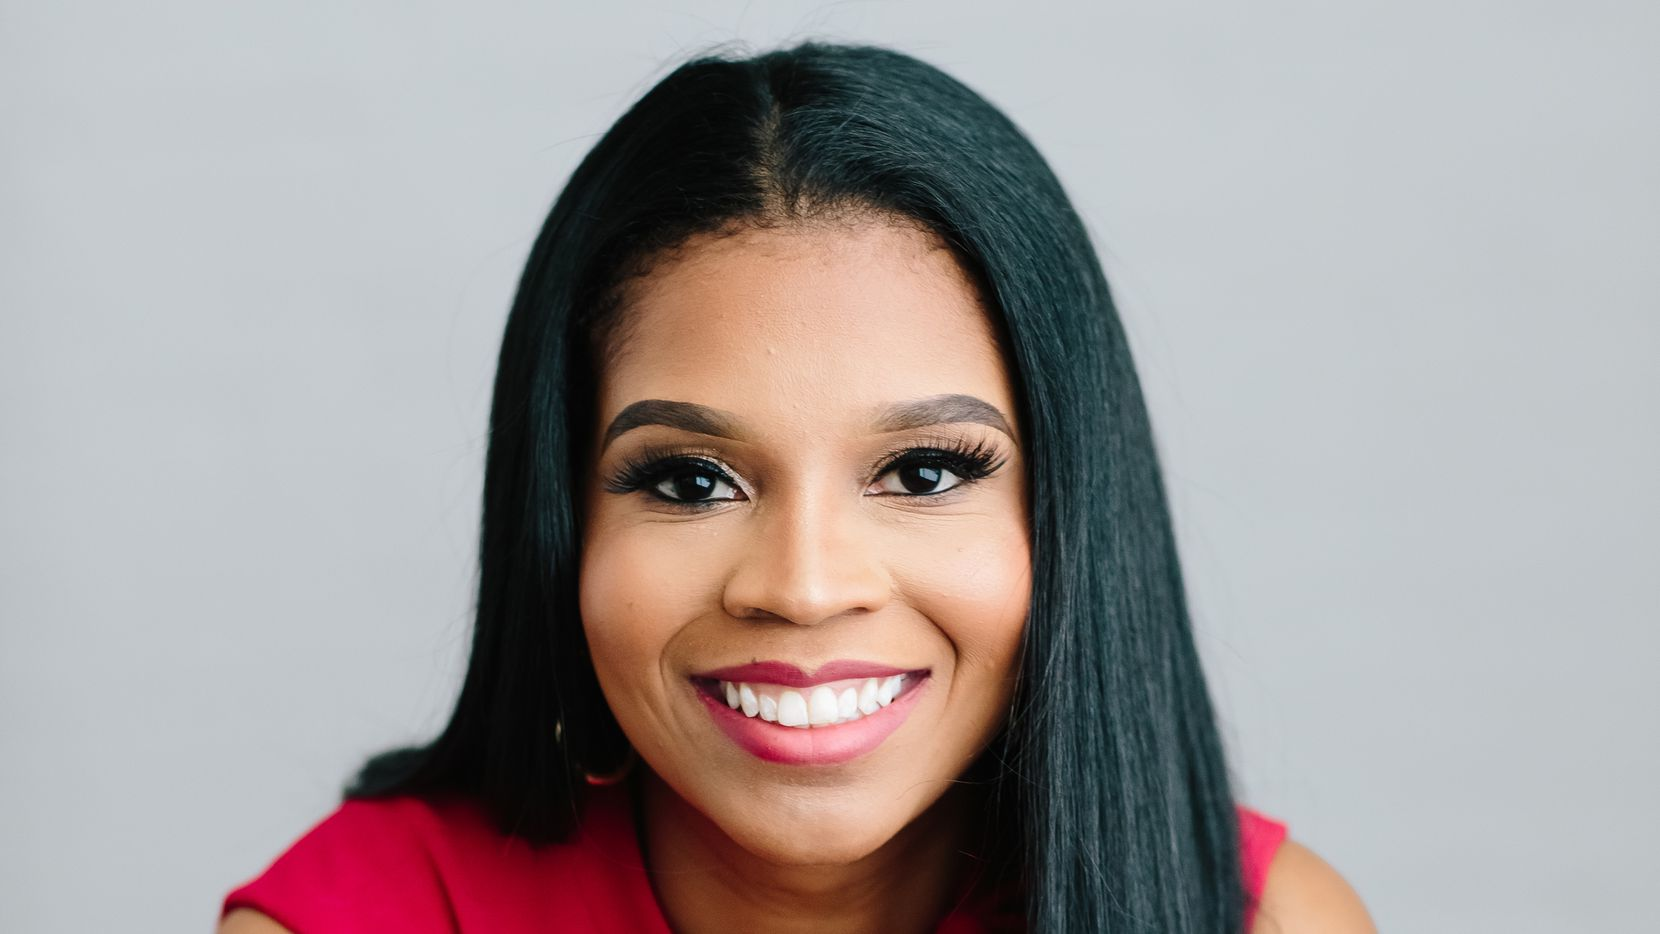 Mandy Price, a DeSoto High School graduate, is the co-founder and CEO of Kanarys, a technology platform that fosters collaboration between companies and employees to improve diversity, equity, and inclusion in the workplace.